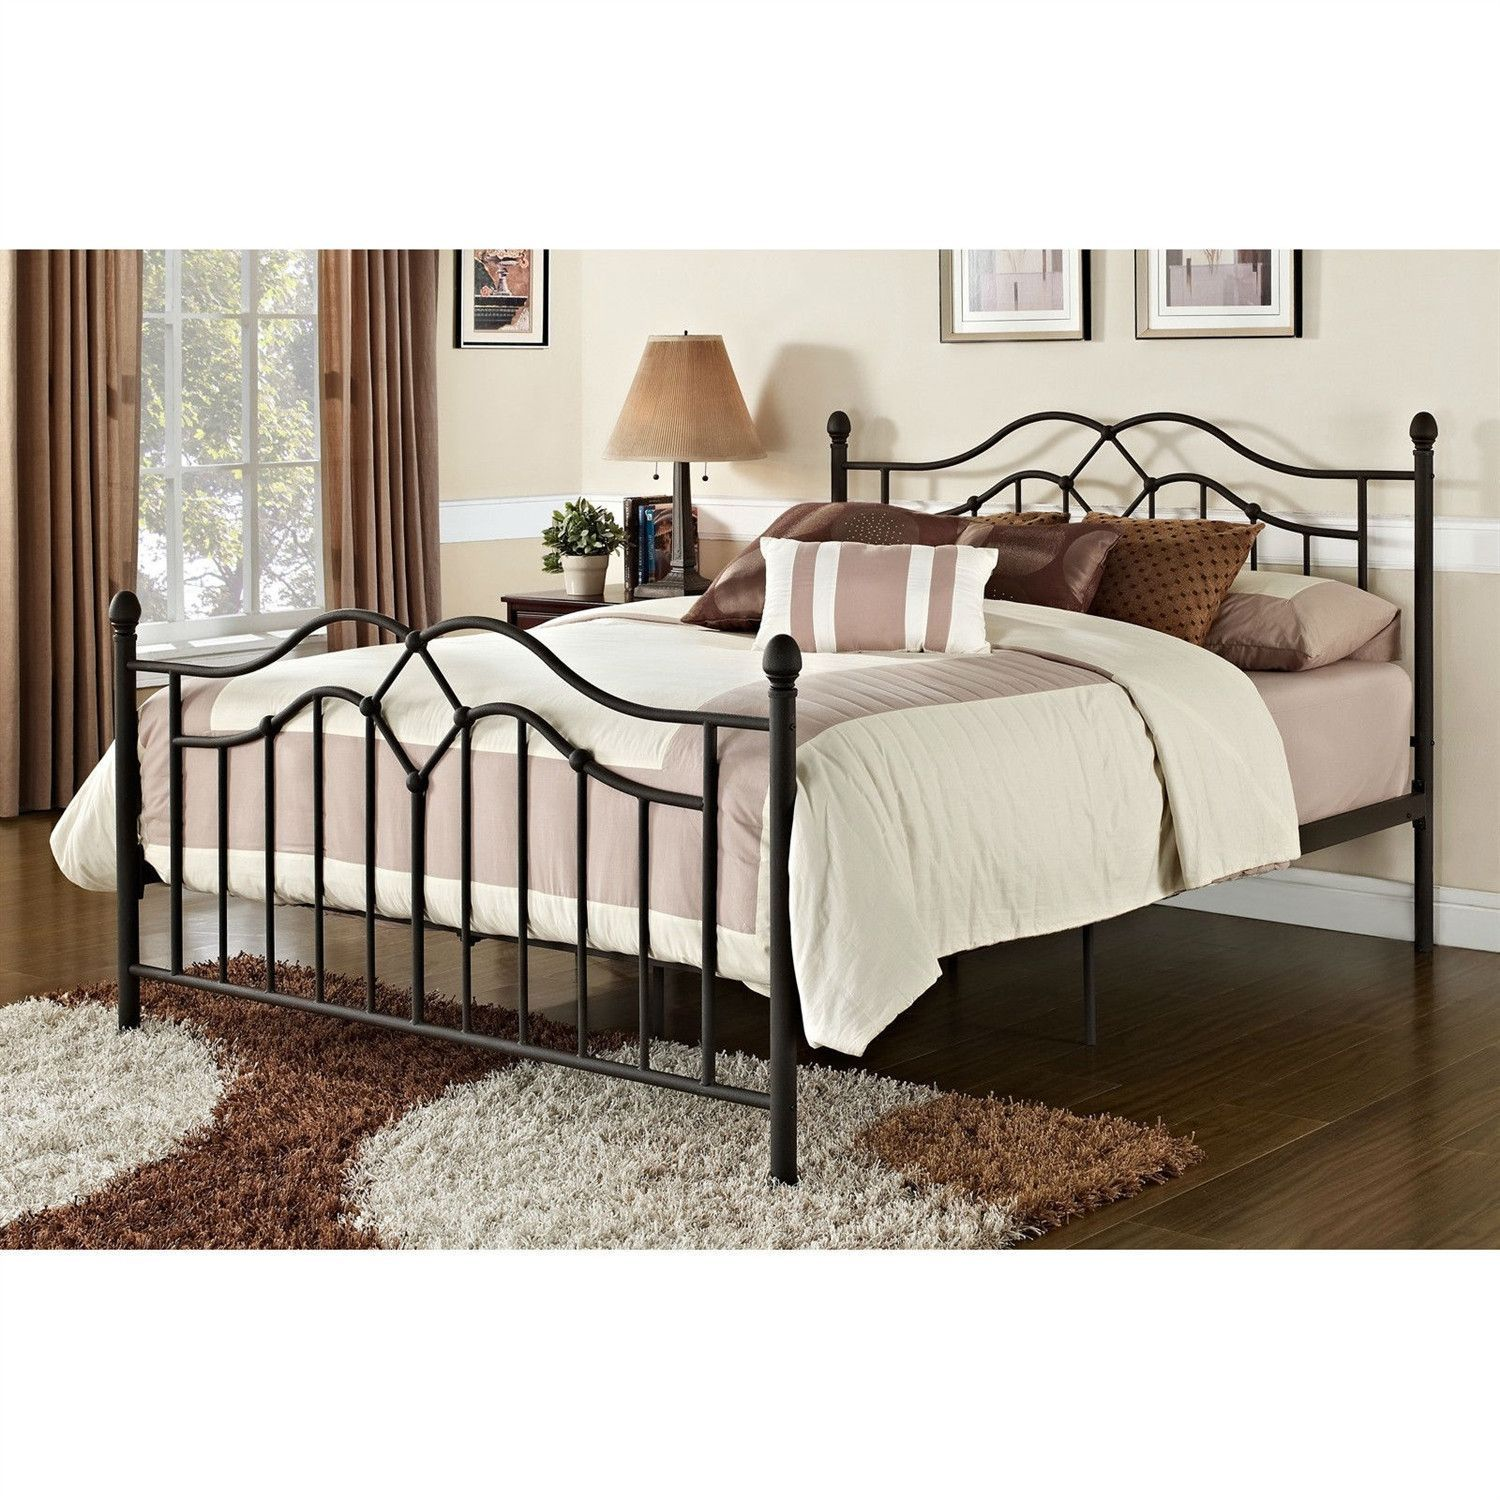 Full size Modern Classic Metal Bed Frame in Brushed Bronze